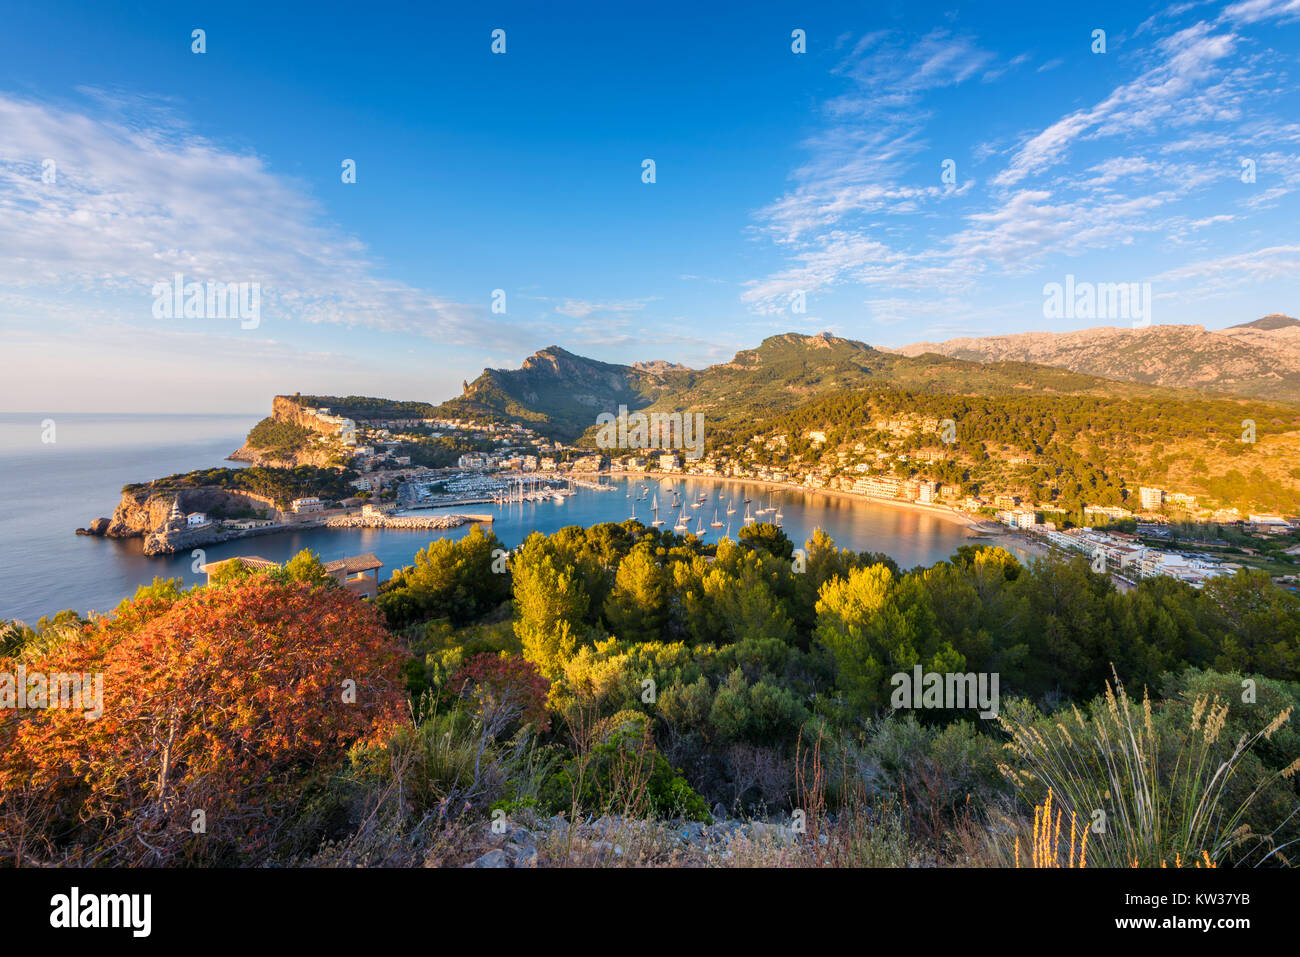 High Angle View on Port de Soller Mallorca Spain at Sunset - Stock Image